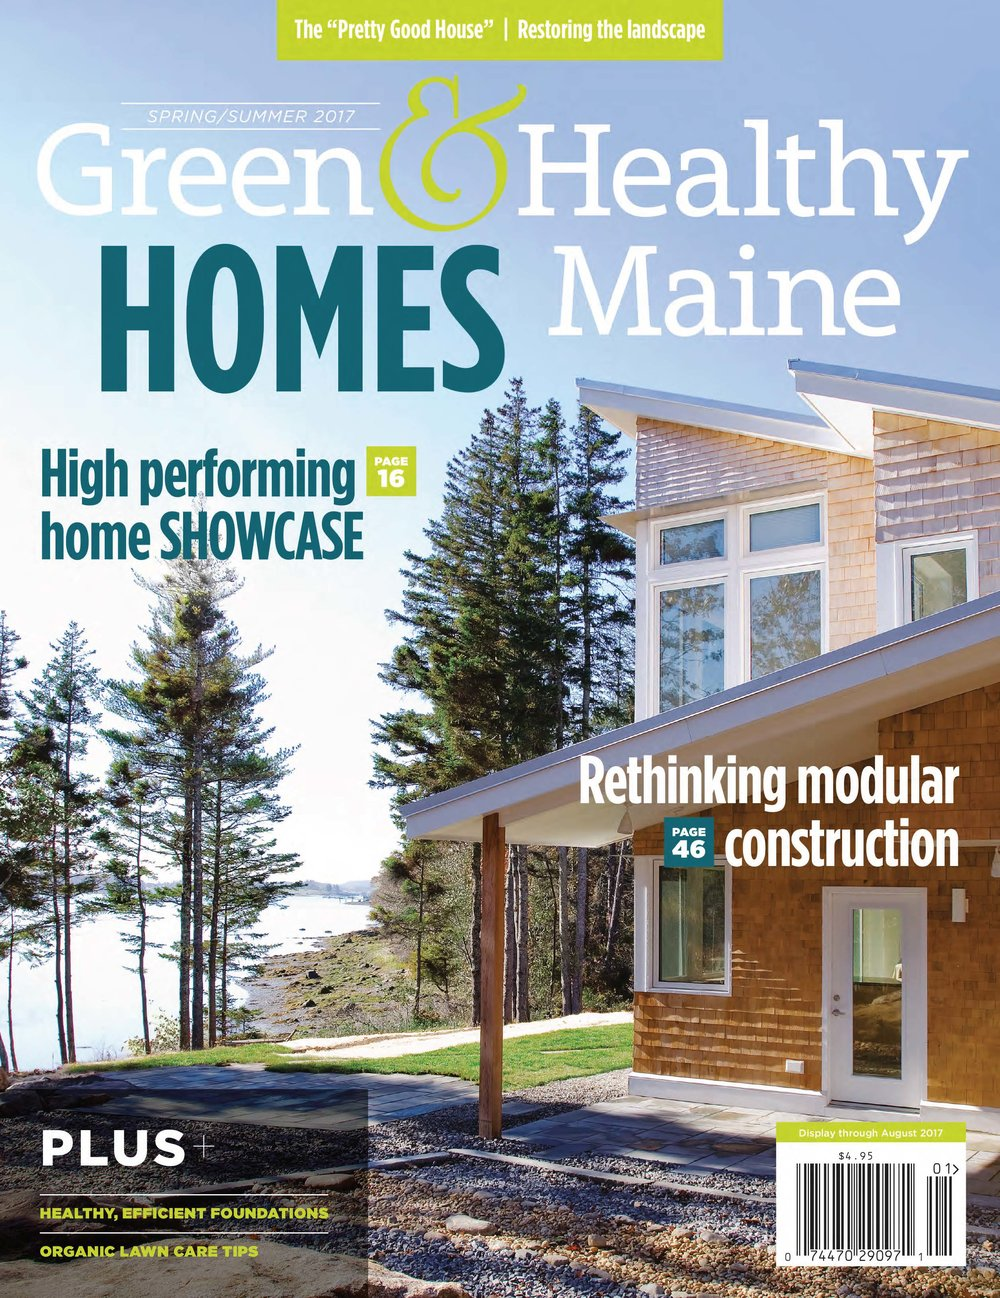 2017GHM_HOMES Cover_RBG.jpg